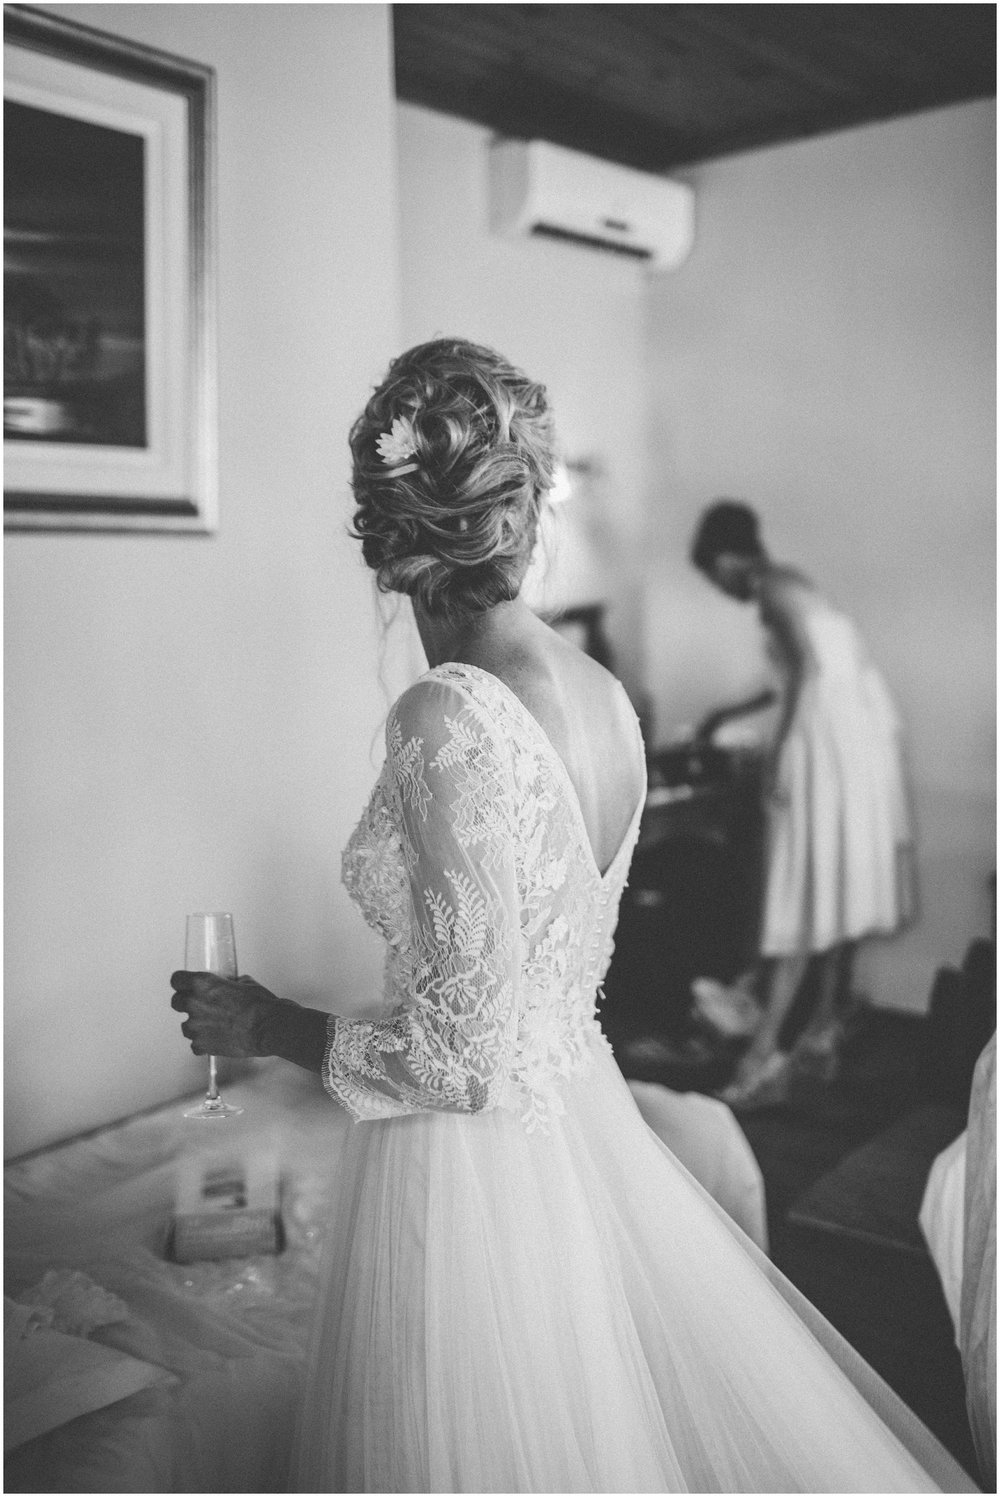 Top Wedding Photographer Cape Town South Africa Artistic Creative Documentary Wedding Photography Rue Kruger_0664.jpg